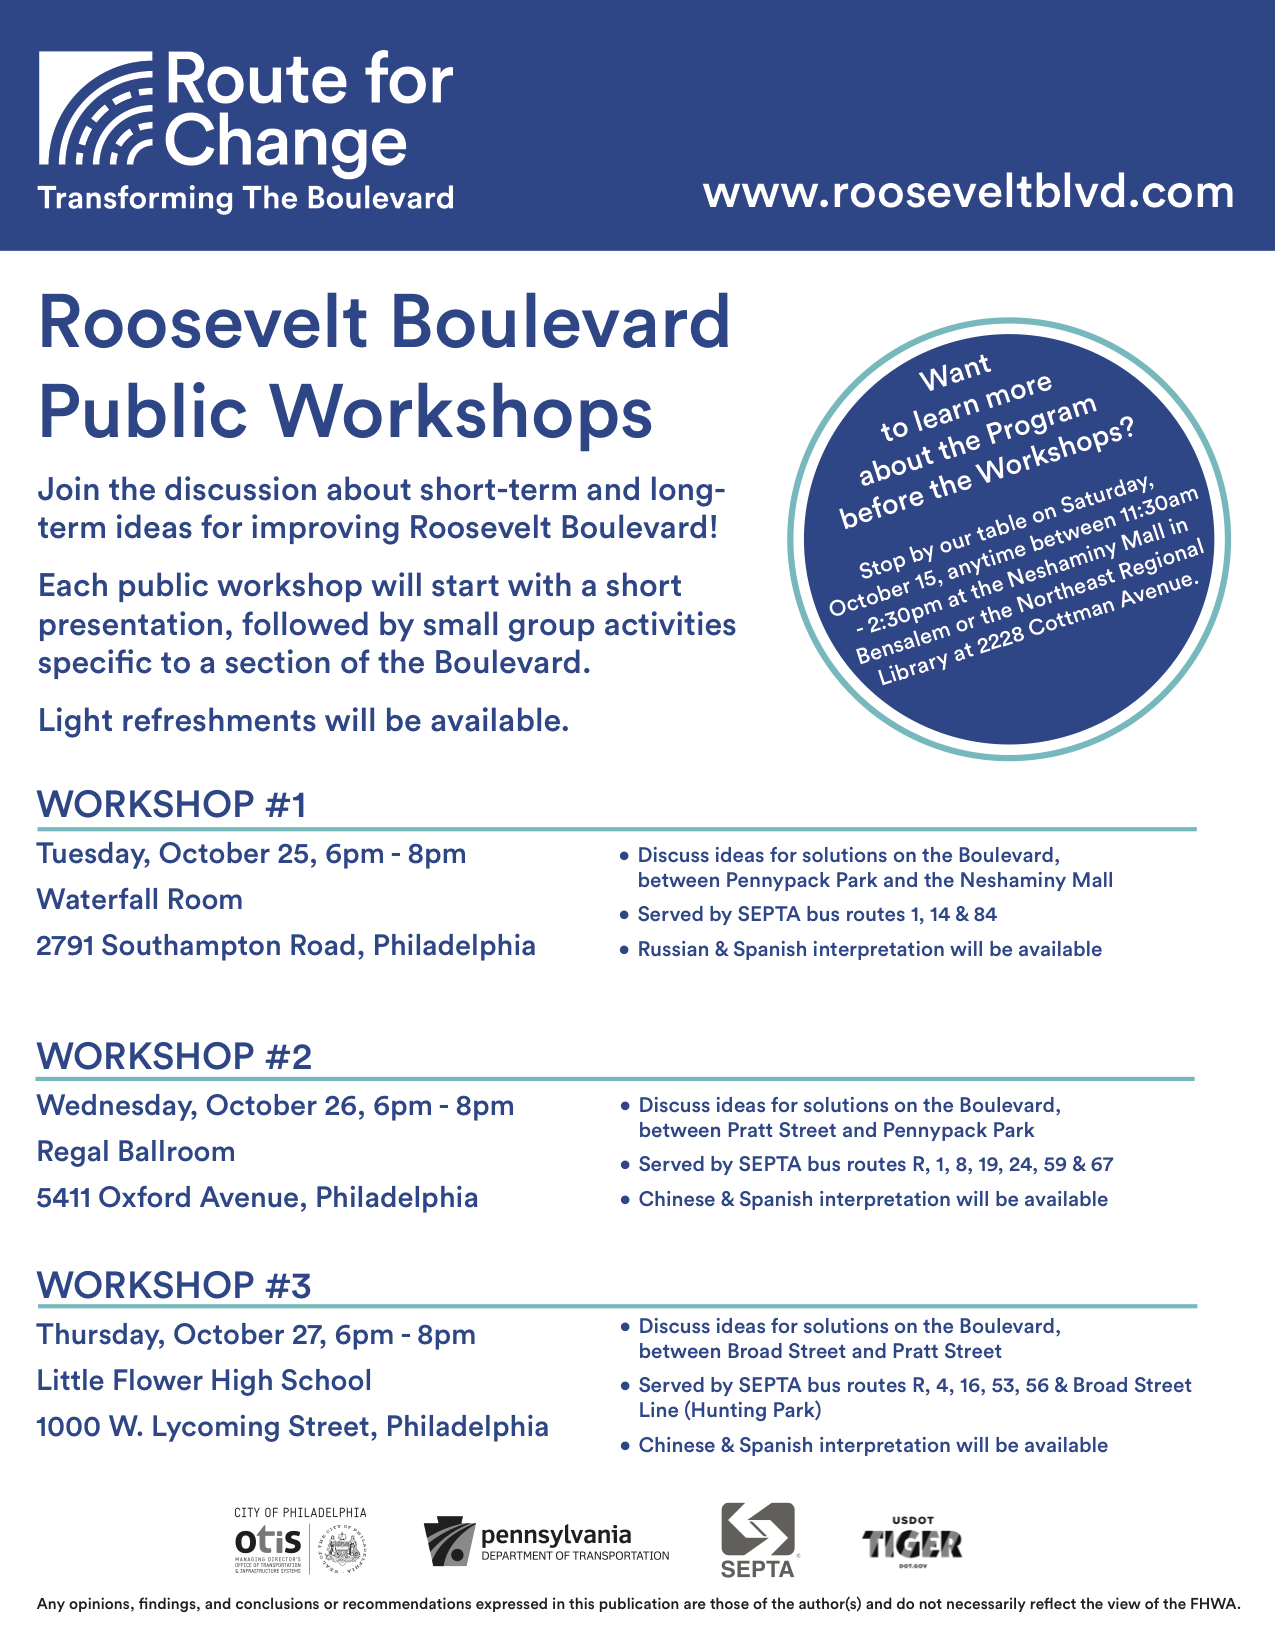 Oct2016_RooseveltBlvd_Workshop_Letter_COLOR_FILE_copy.jpg